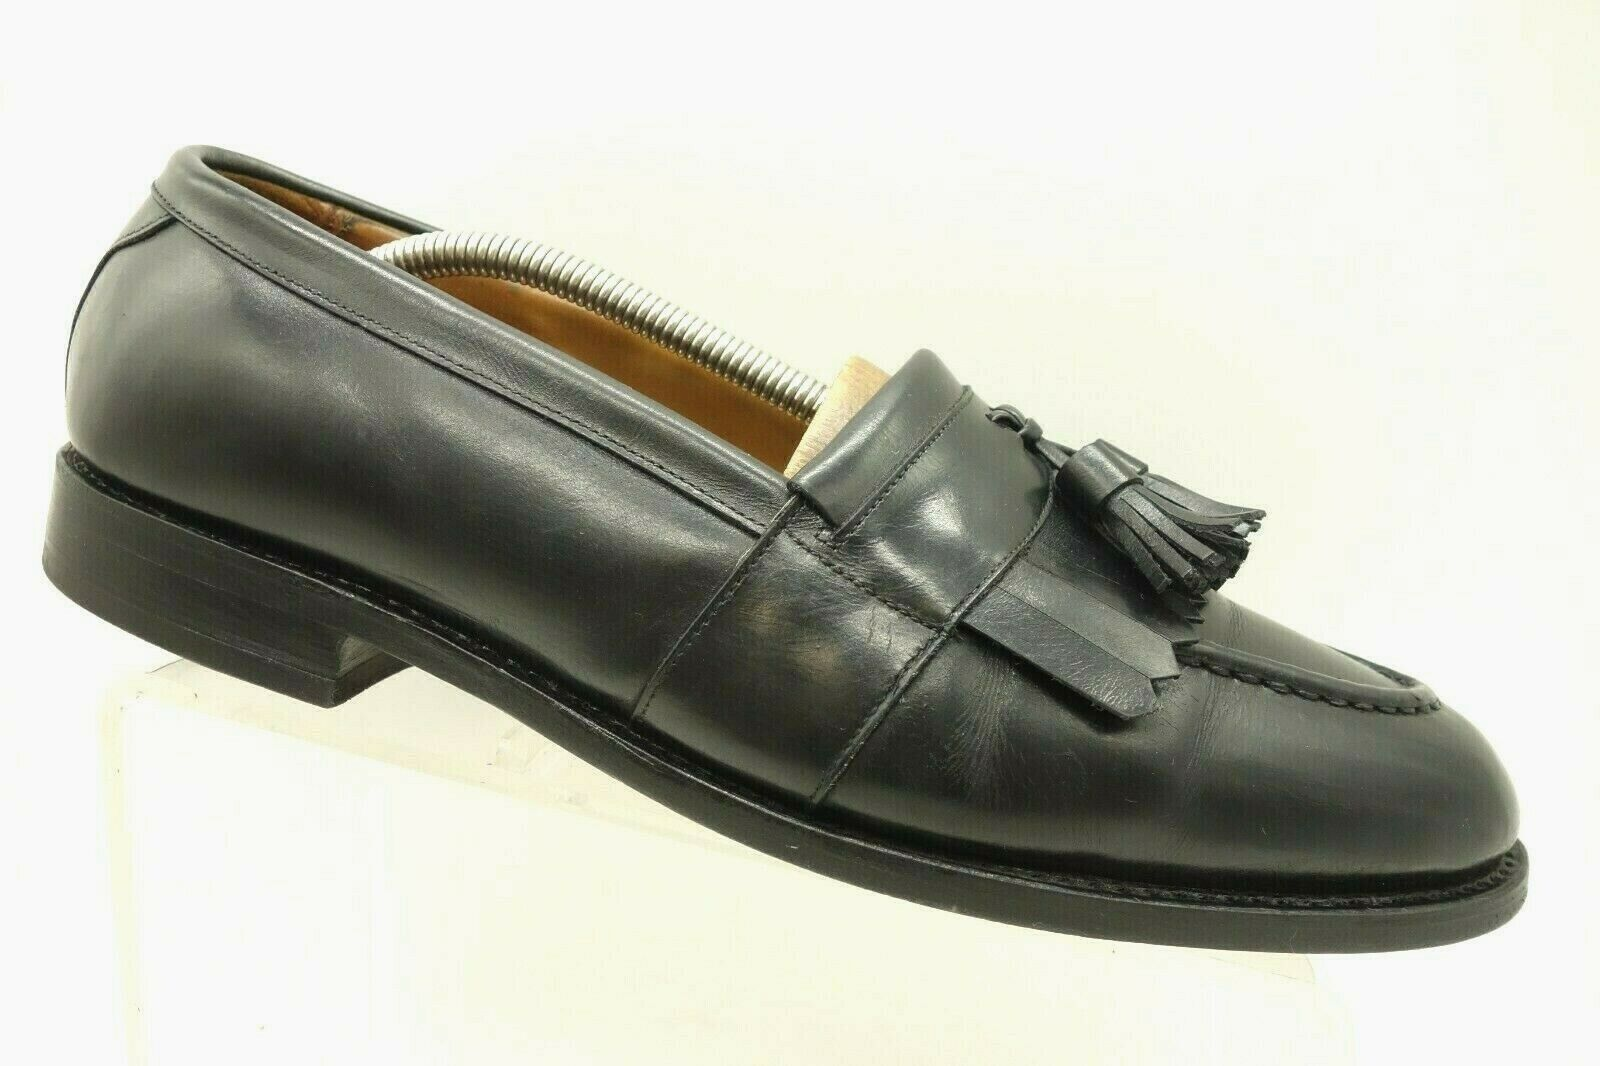 Allen Edmonds Black Leather Casual Tassel Kilt Slip On Loafers shoes Mens 10.5 E